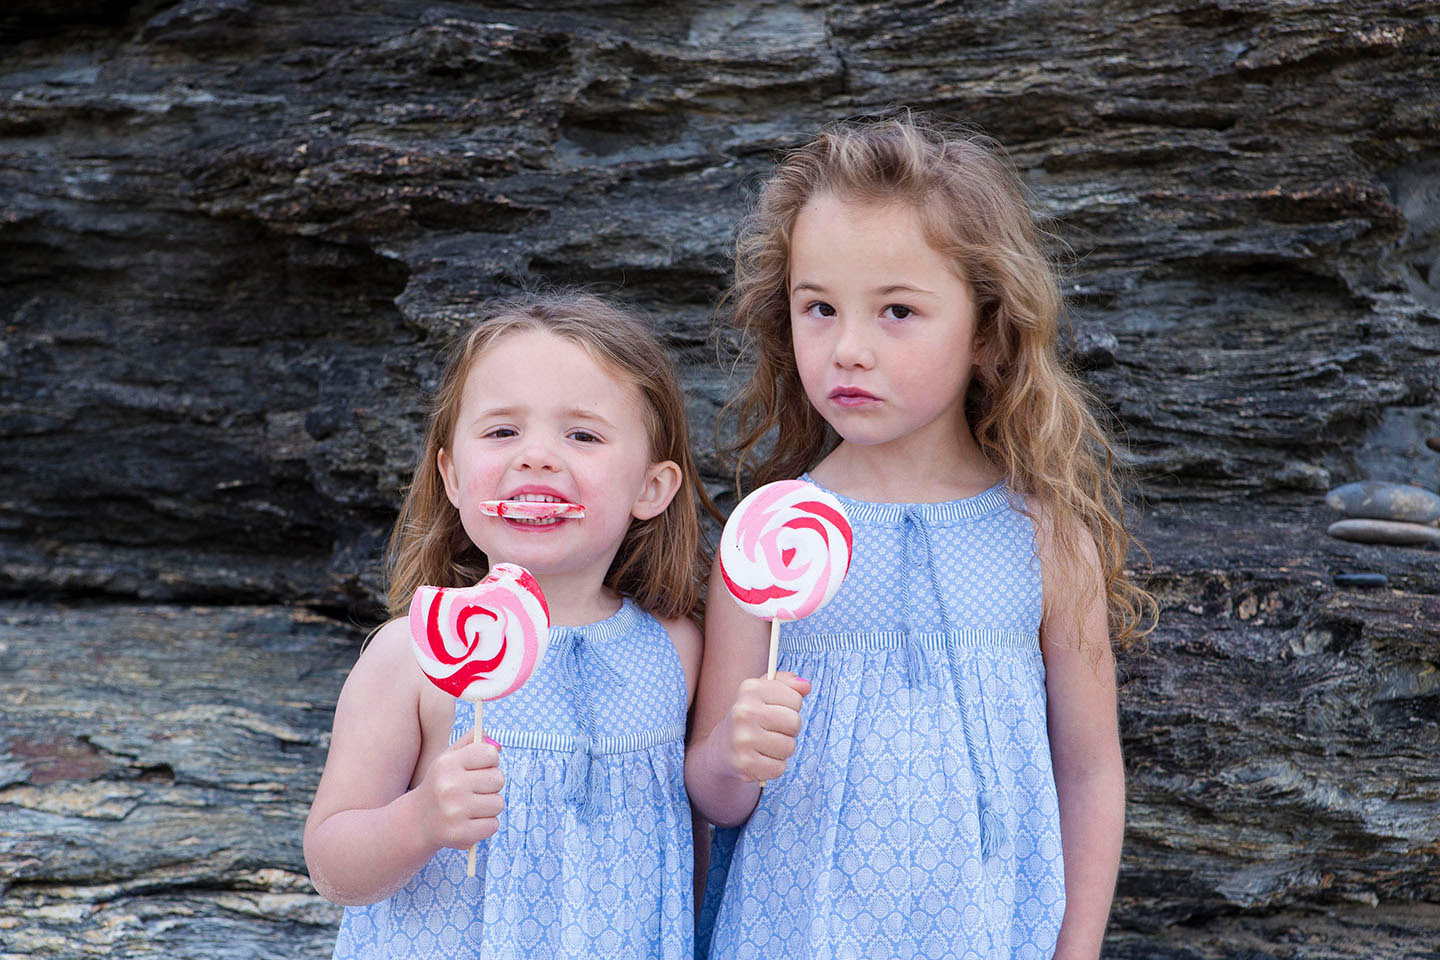 Sisters, family photography, childhood, beach, lollipops,Alice Payne photography